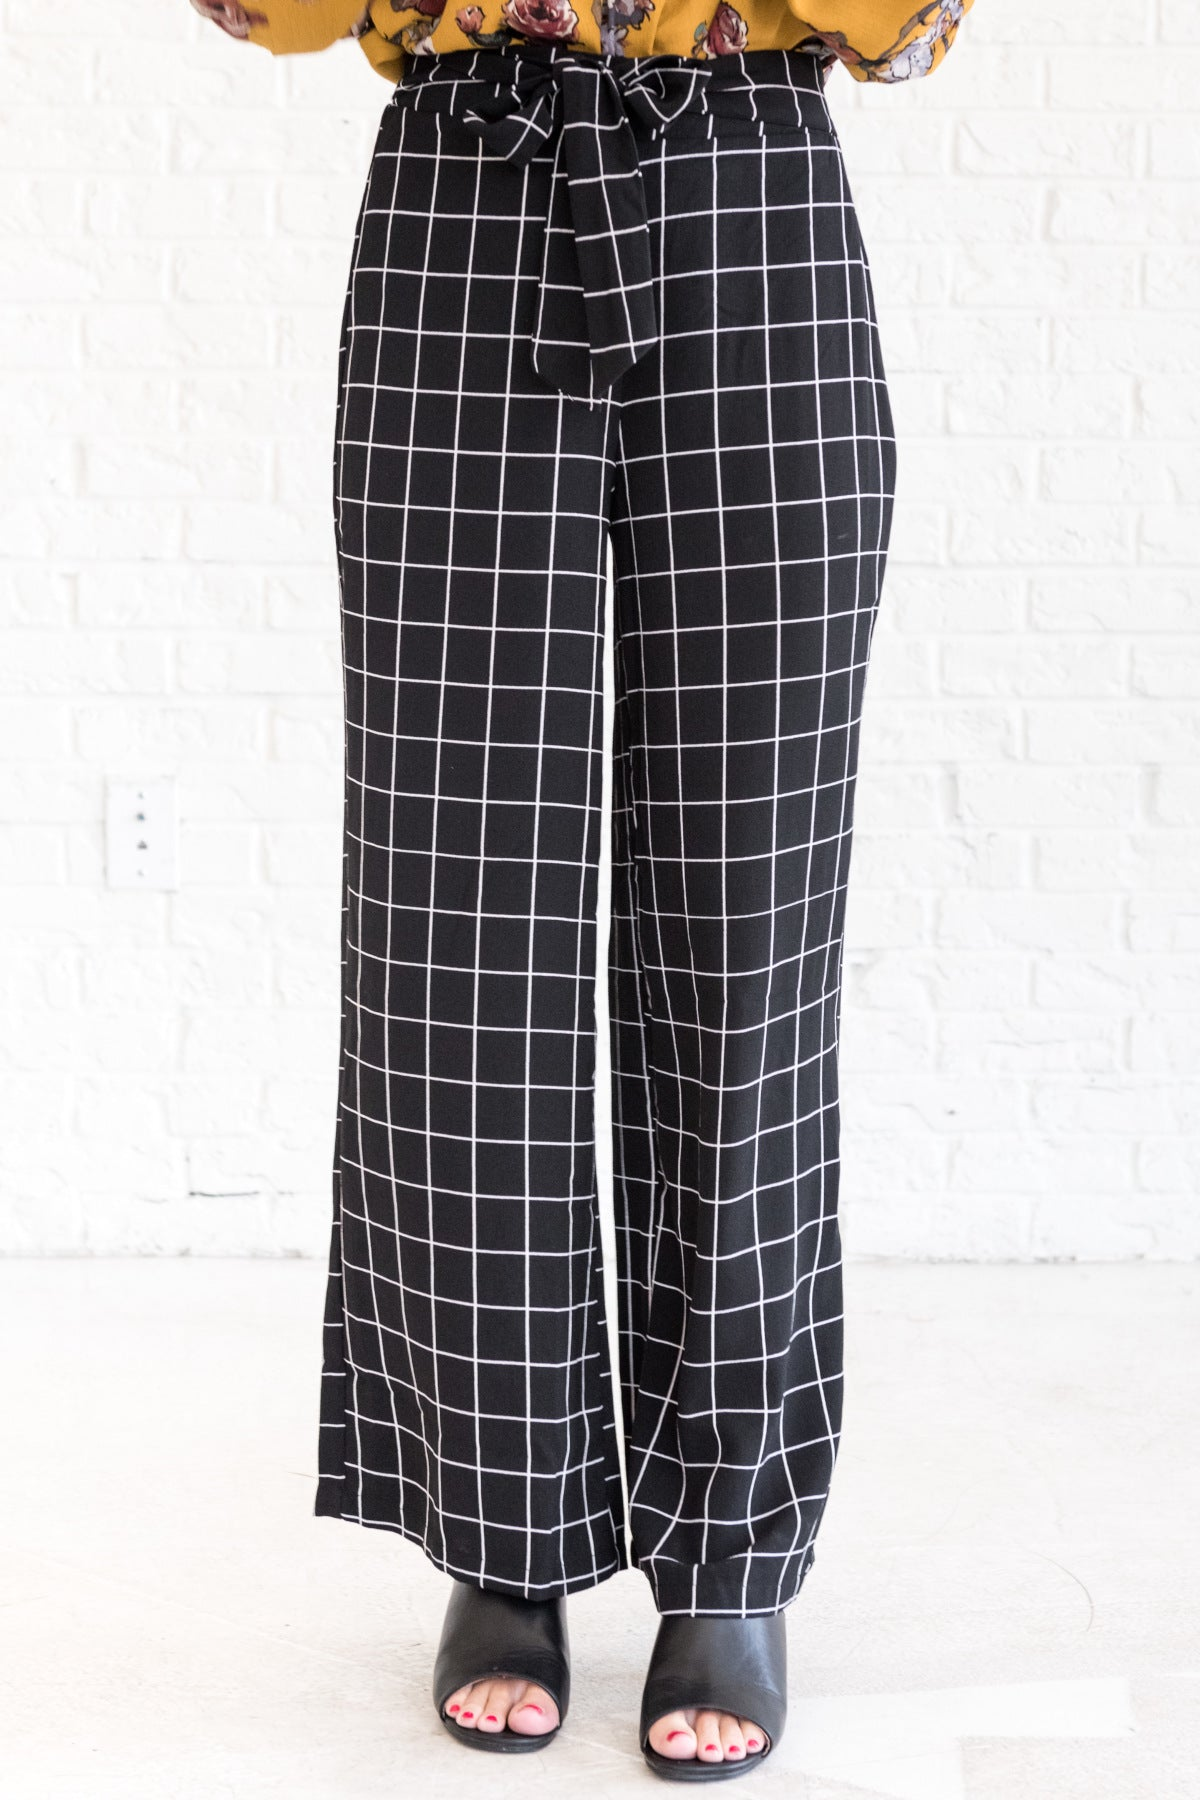 Black White Striped Grid Palazzo Flare Pants for Women